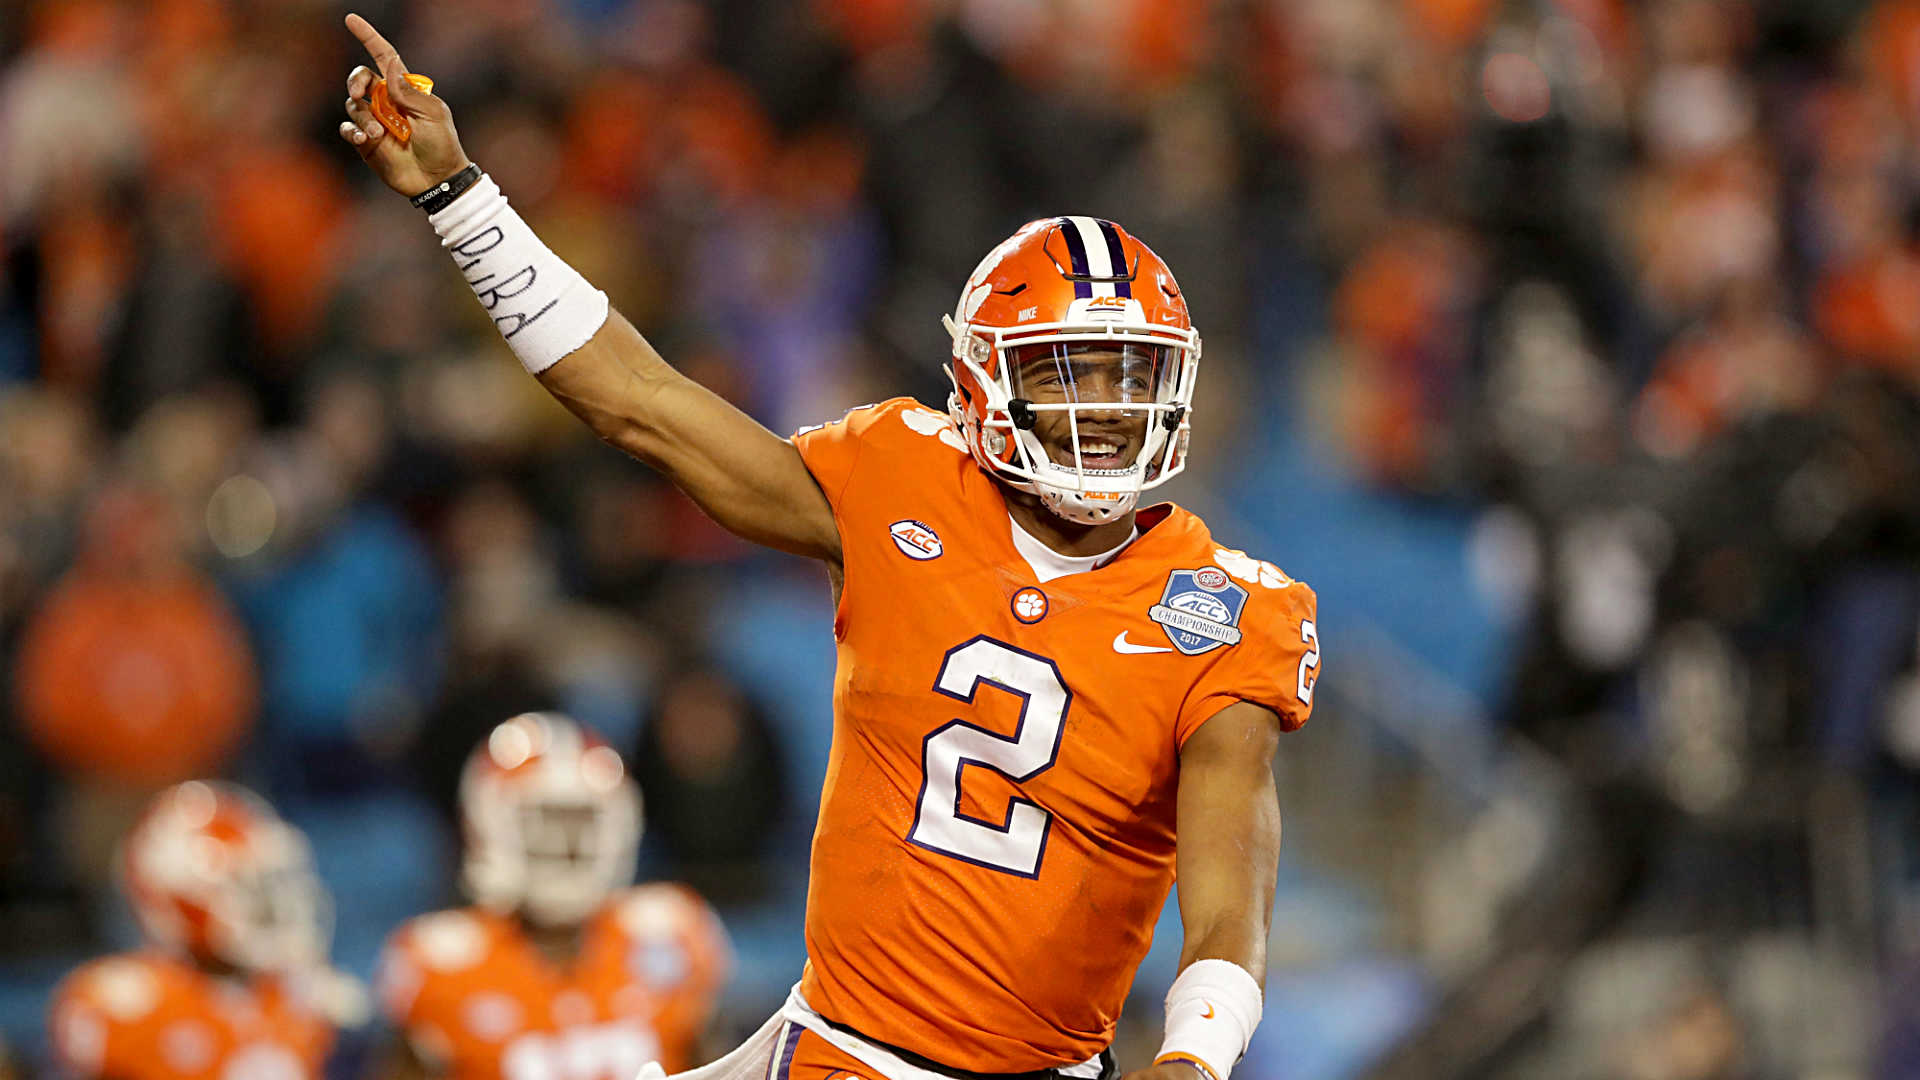 ACC Championship Odds & Bets to Make for Clemson vs. Miami FL